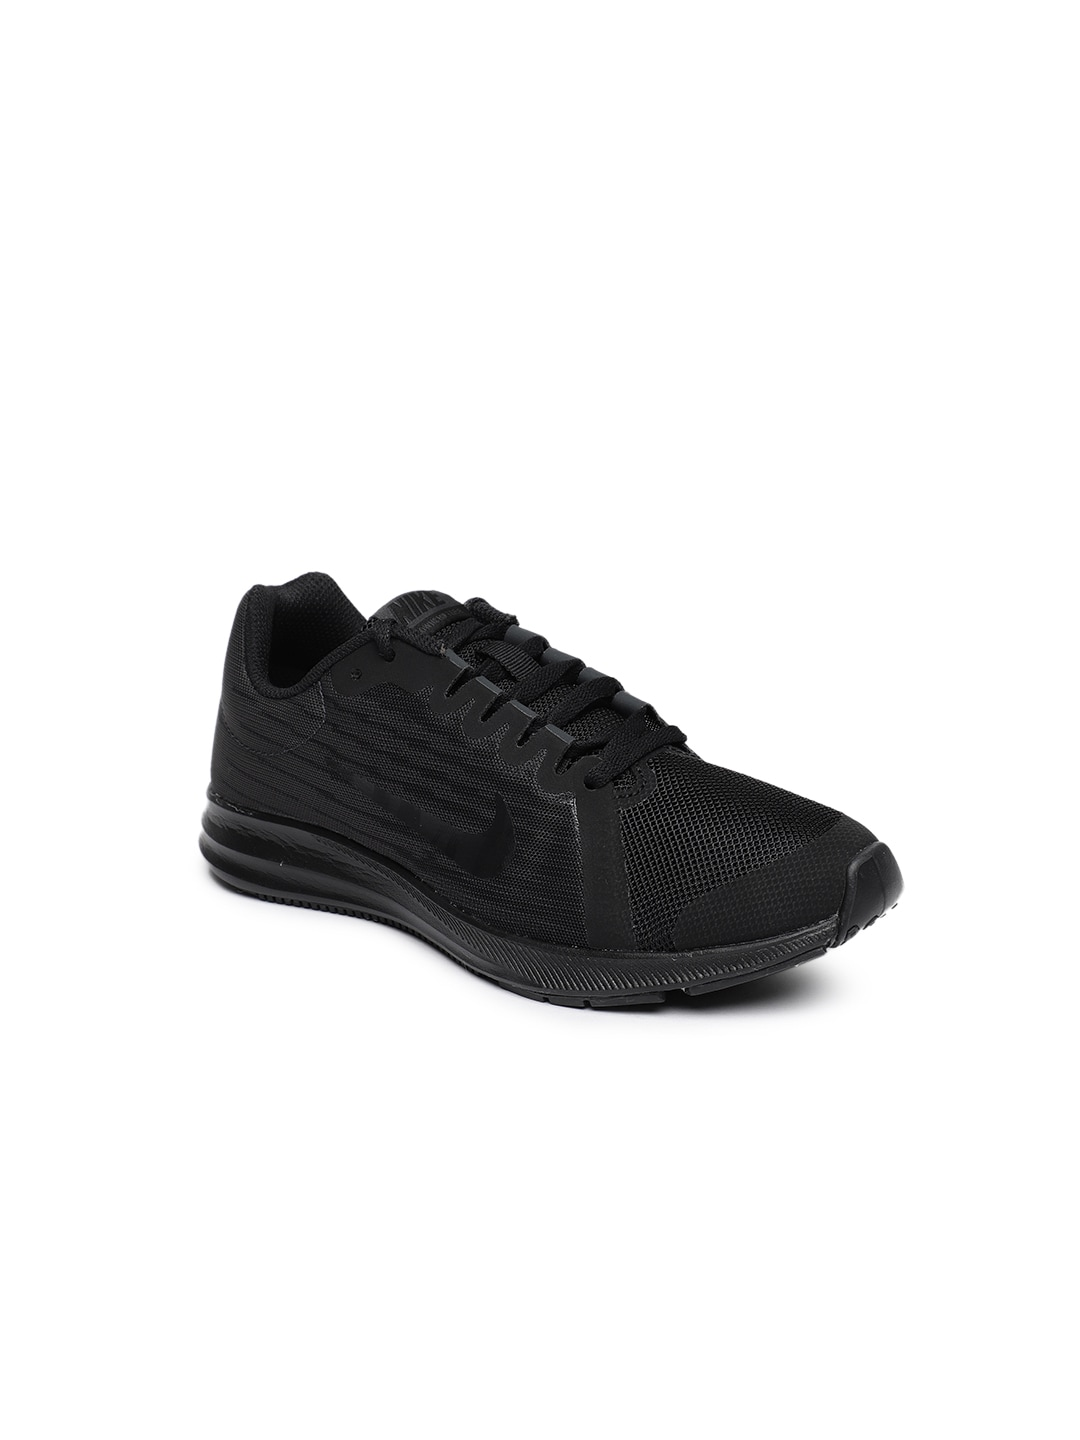 huge selection of c7abd acff9 Nike Shoes - Buy Nike Shoes for Men   Women Online   Myntra